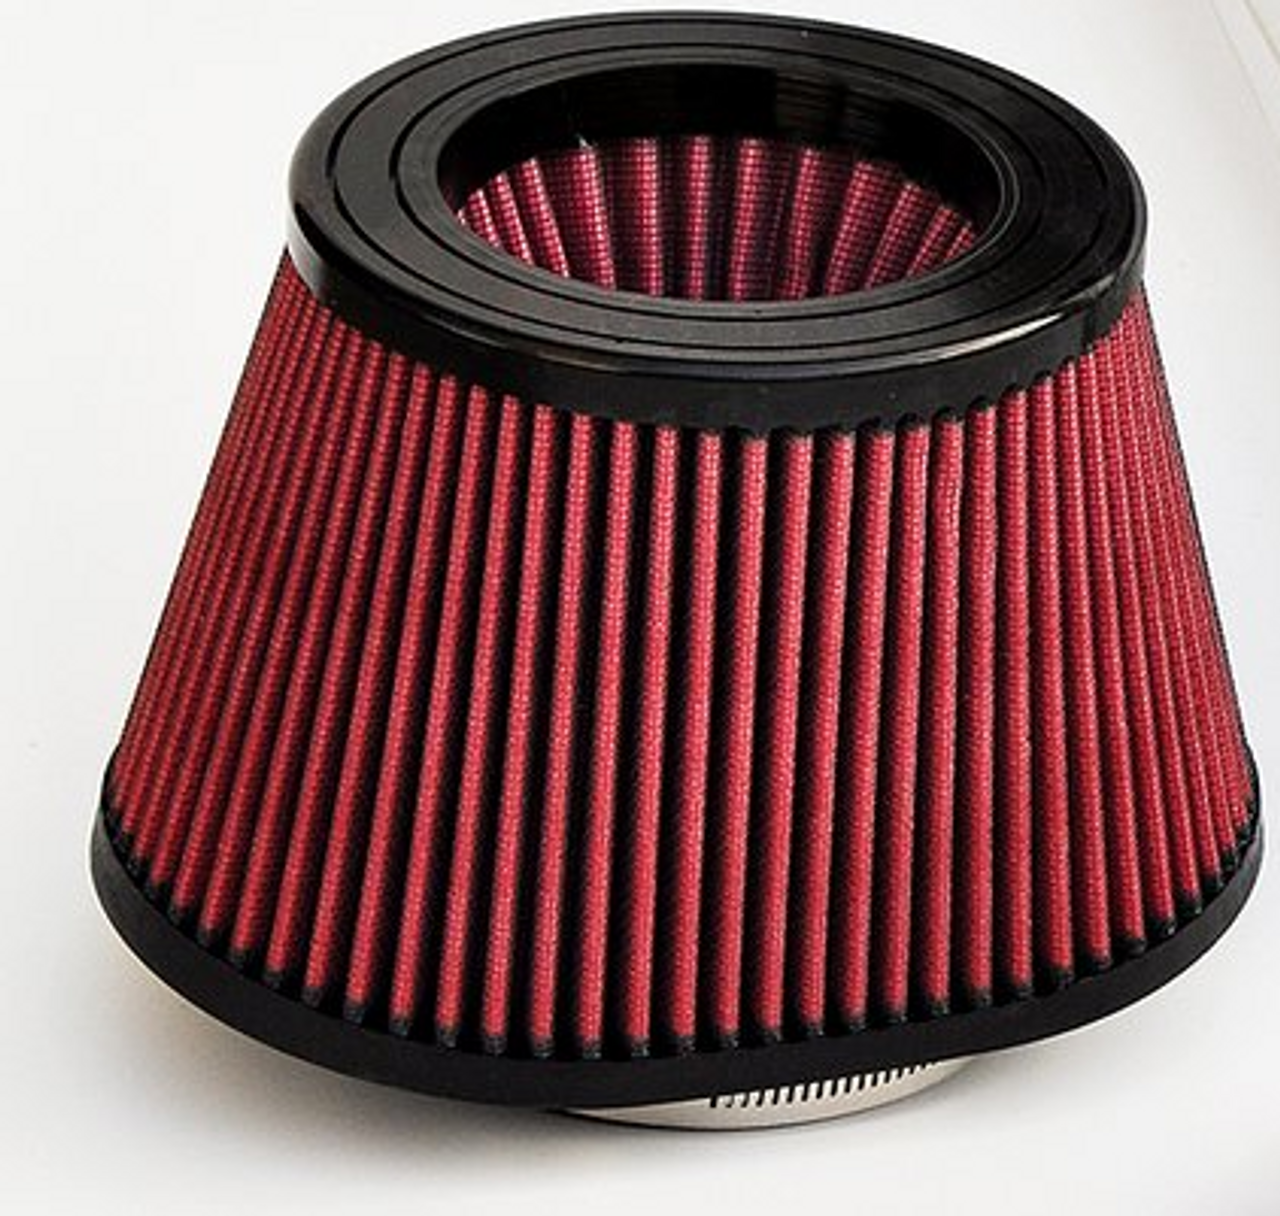 Replacement oiled filter for ATM Intakes (AAR2447)